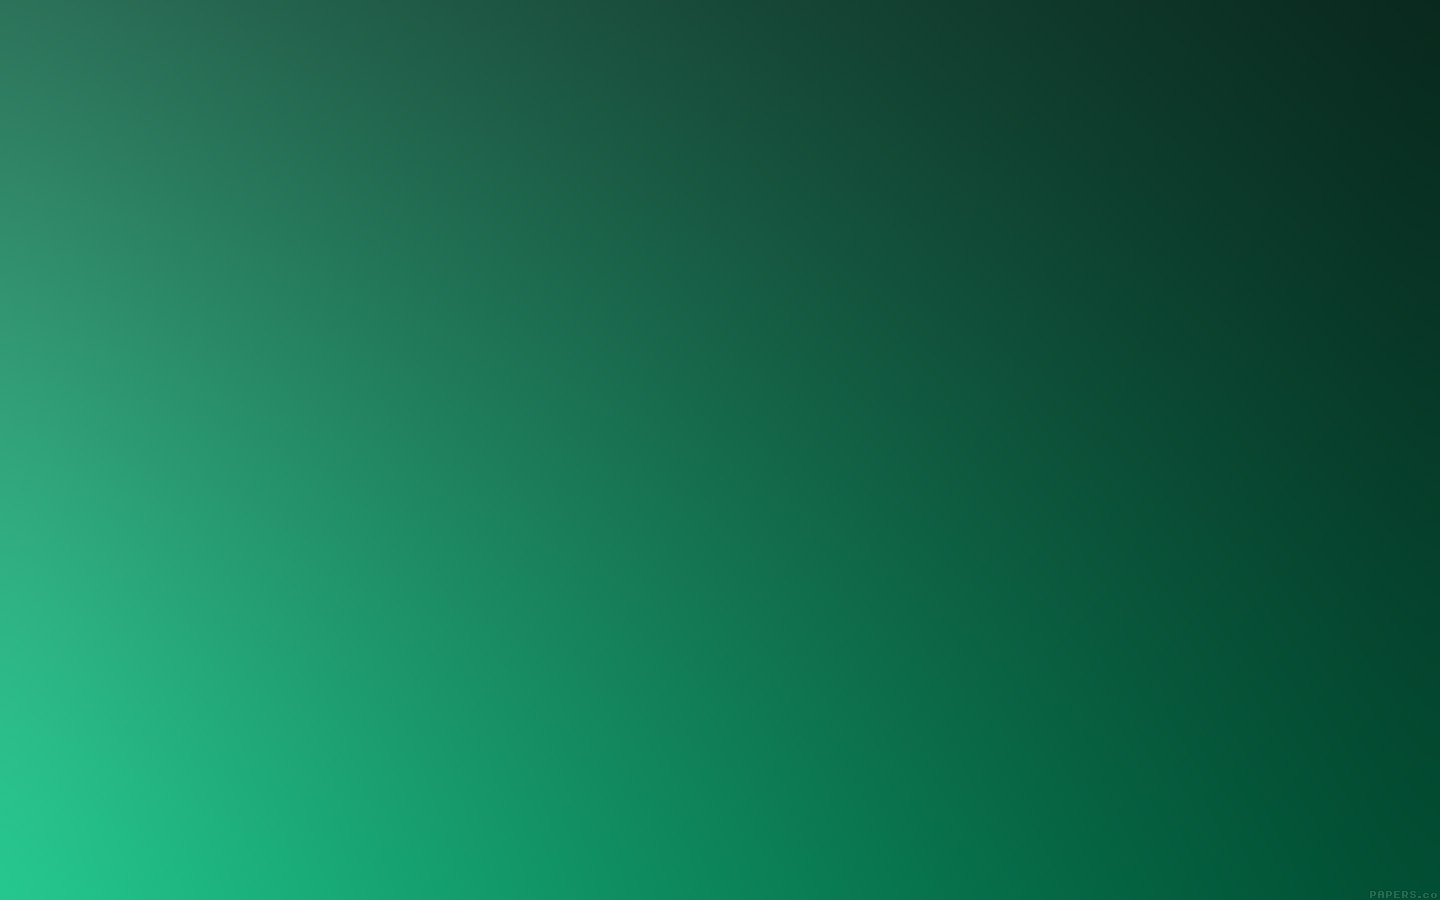 3d Live Wallpaper For Galaxy Y Se99 Green Grass Gradation Blur Papers Co